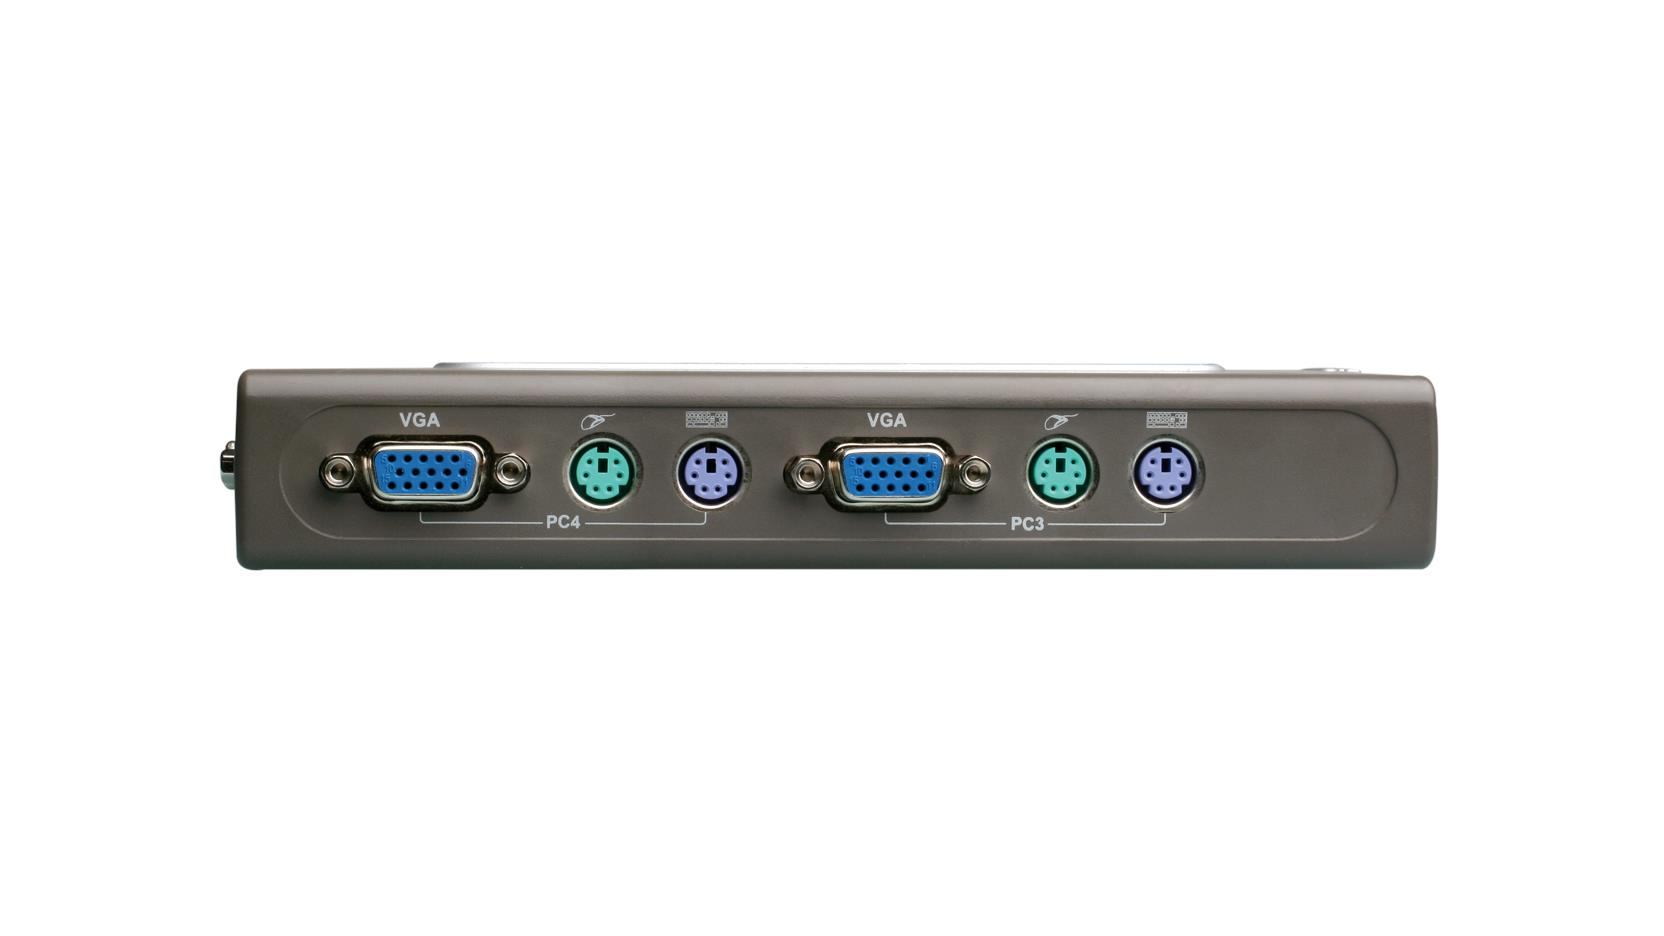 D-Link 4-Port PS/2 KVM Switch (DKVM-4K)